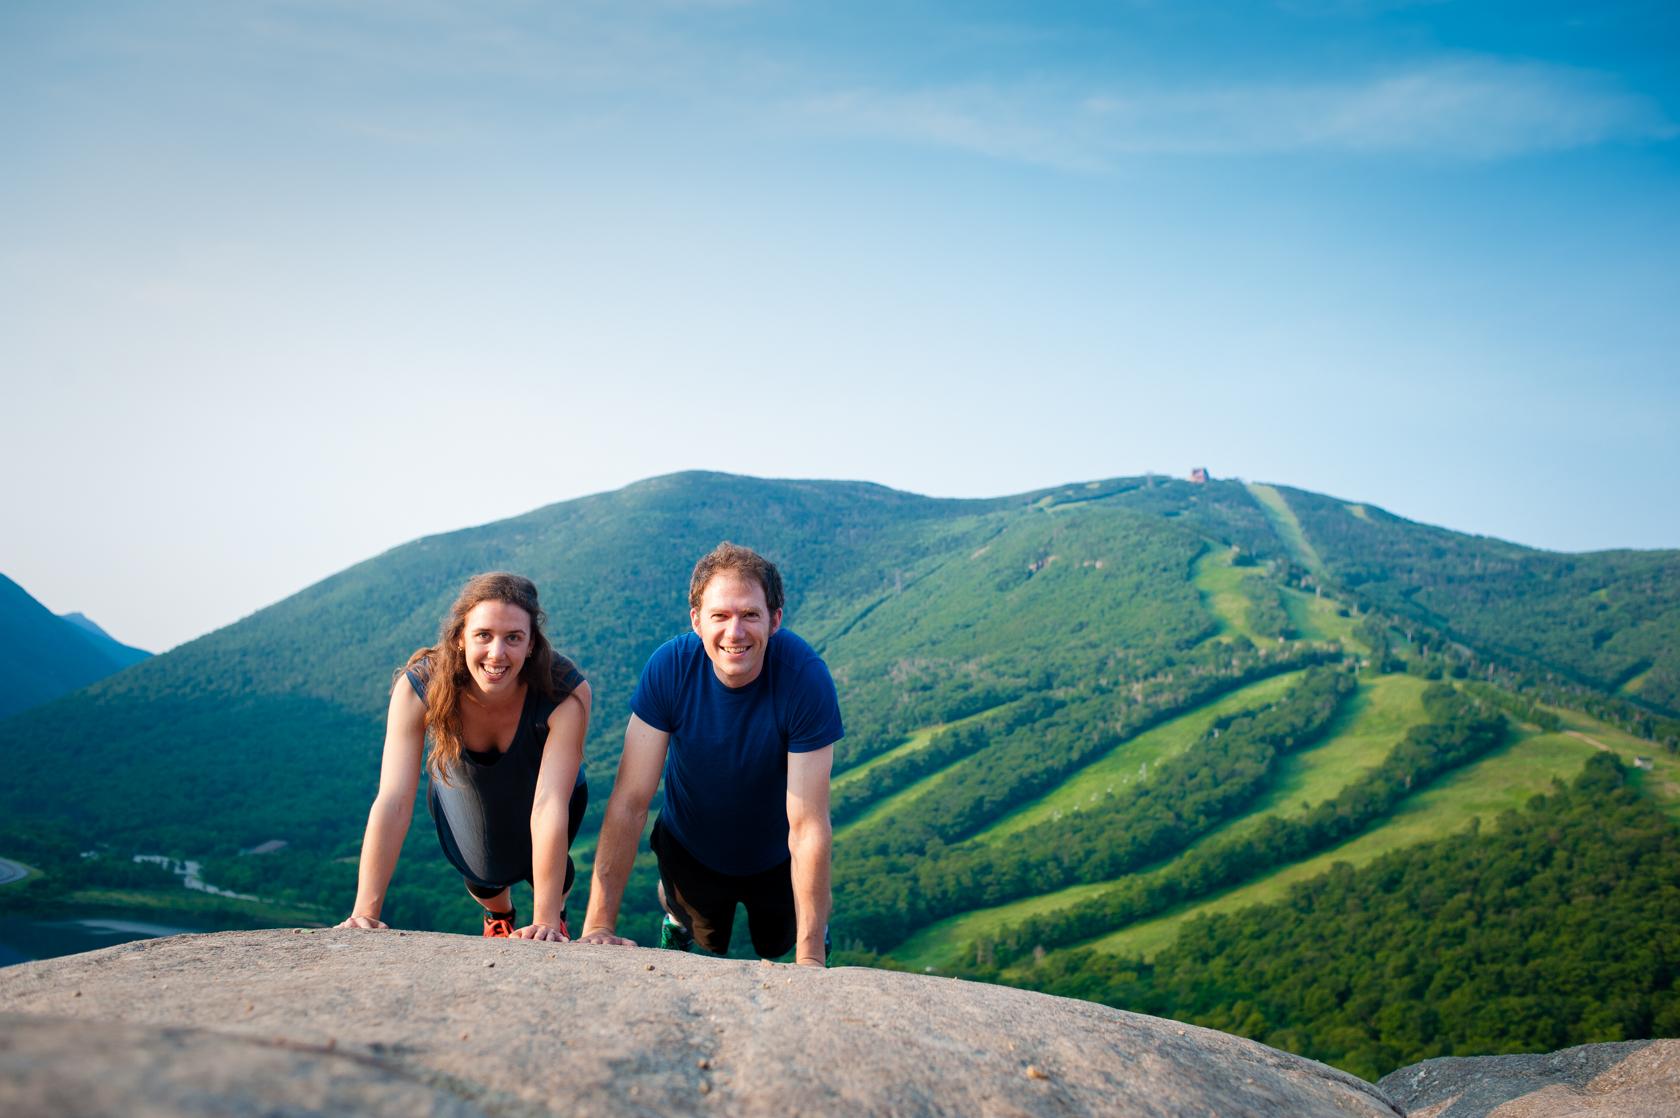 adorable couple battling in a mountaintop push up contest